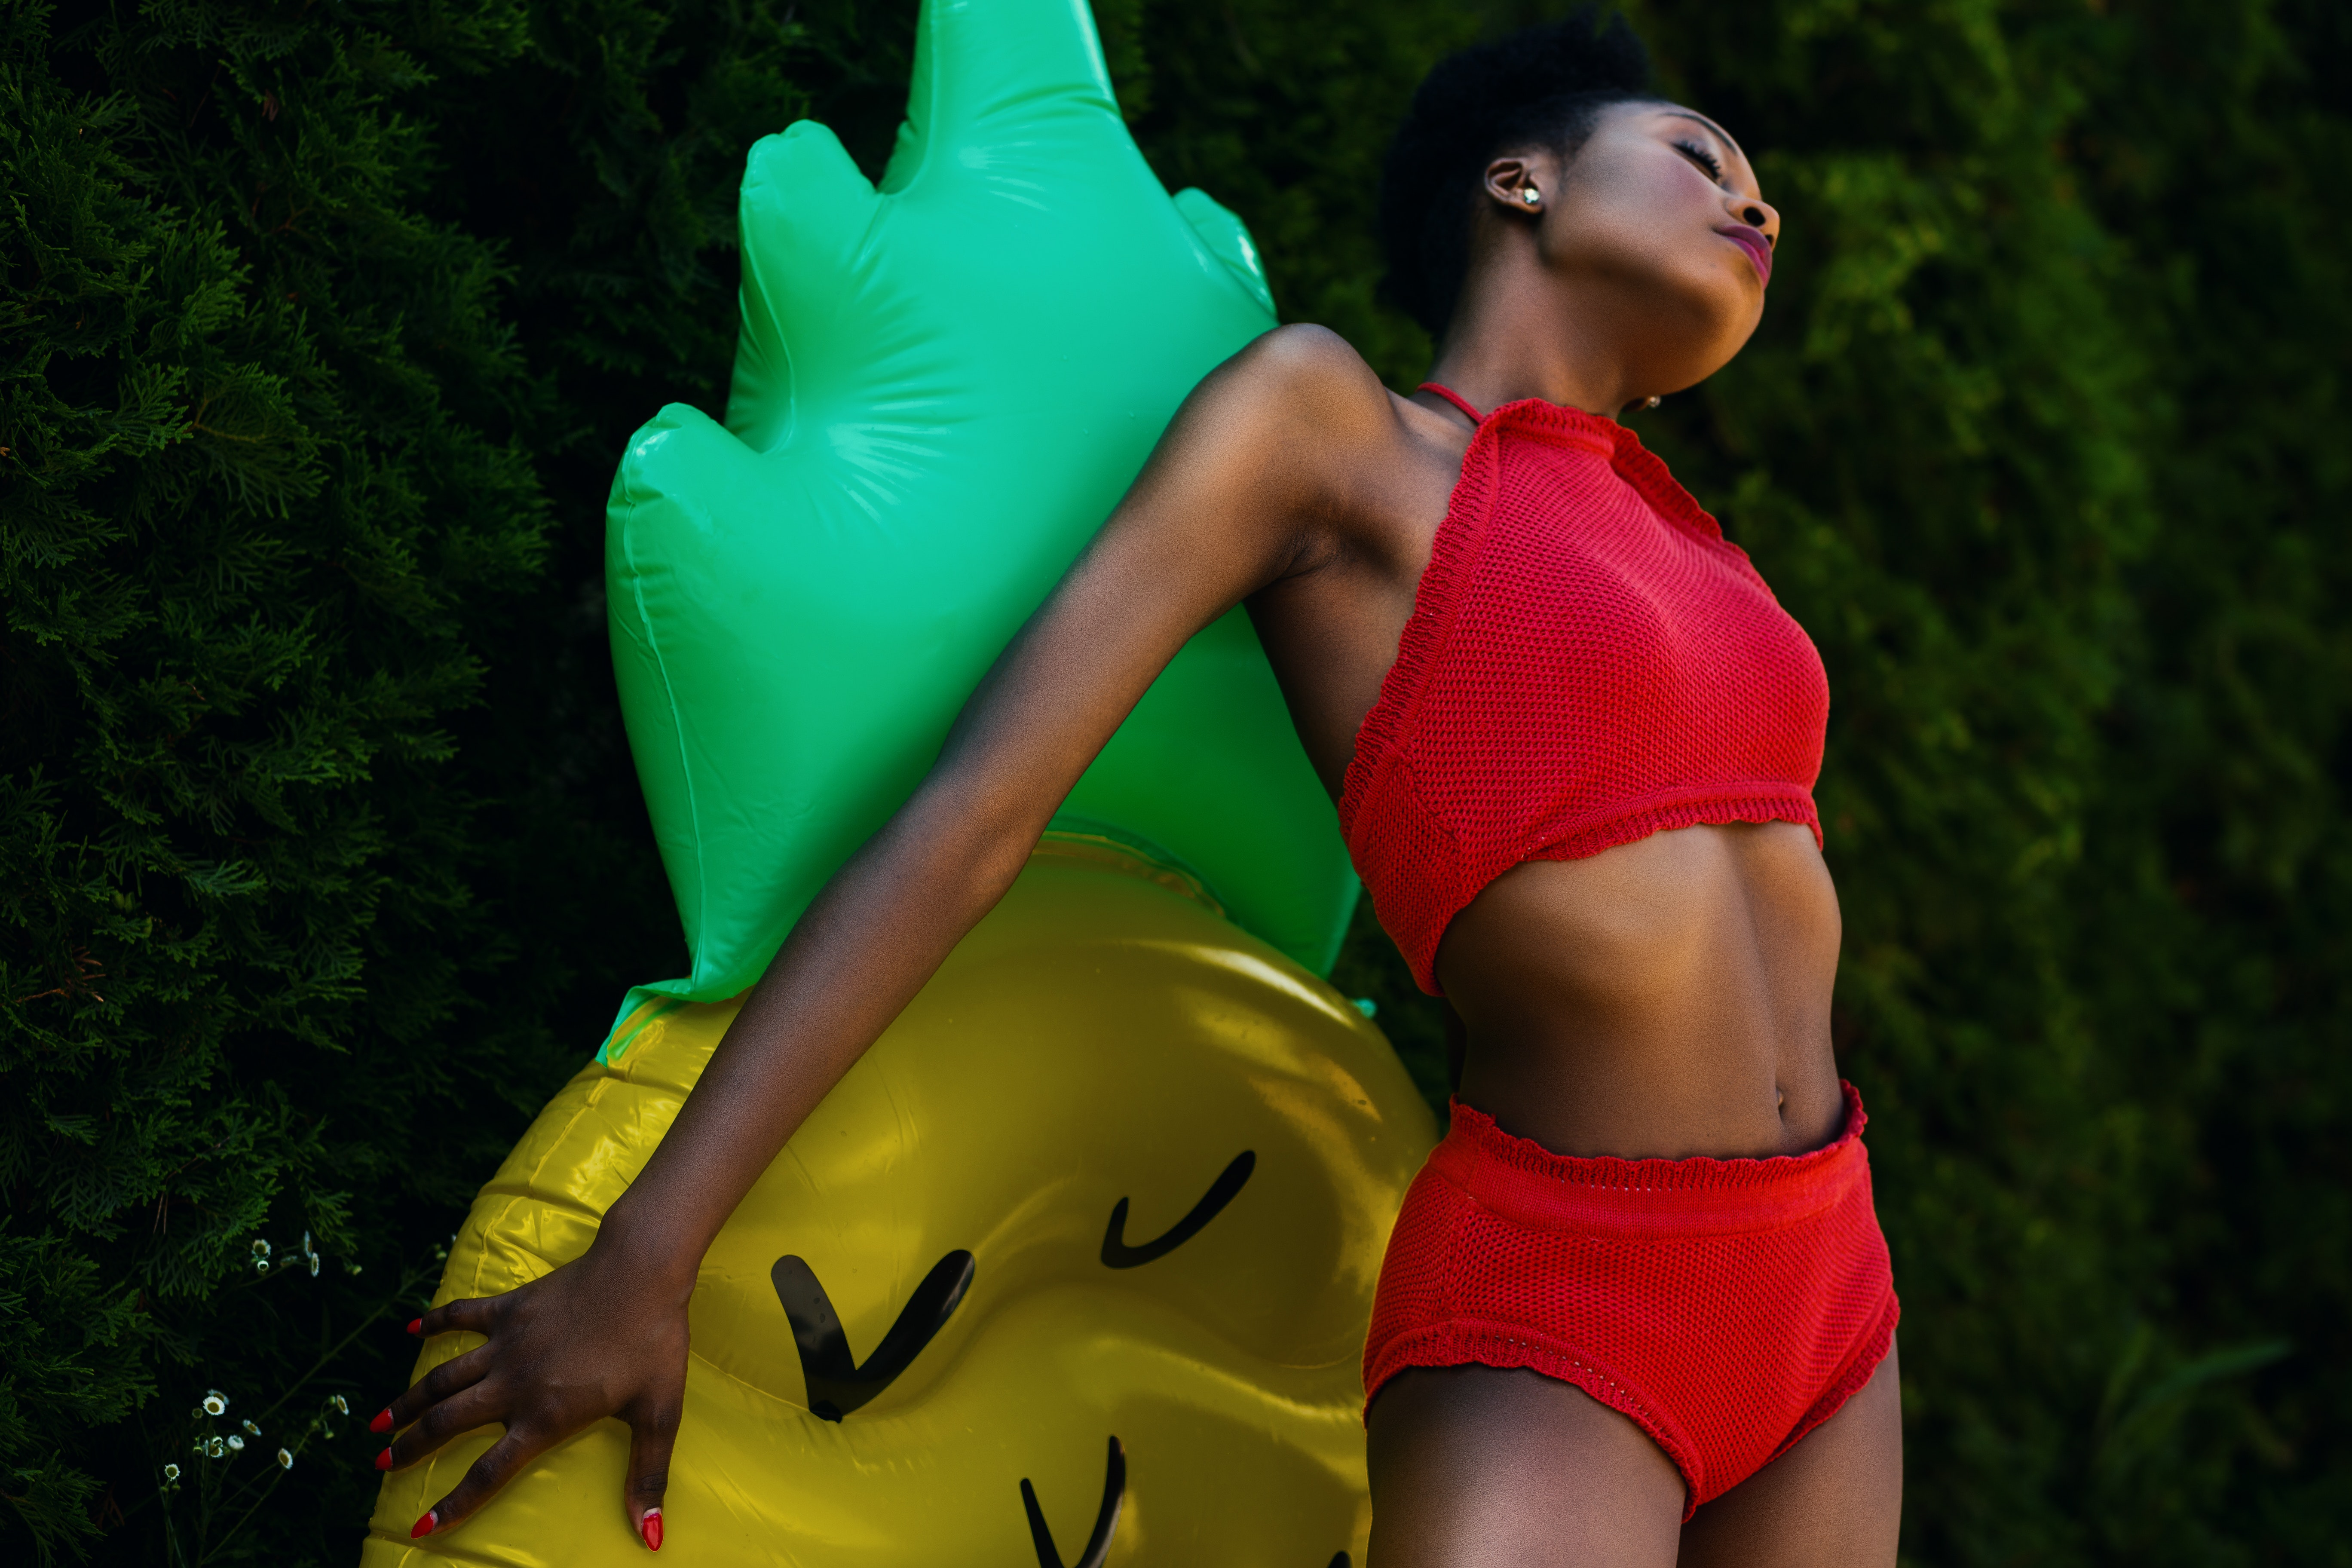 Woman wearing red top and bottoms leaning on yellow and green inflatable standee photo